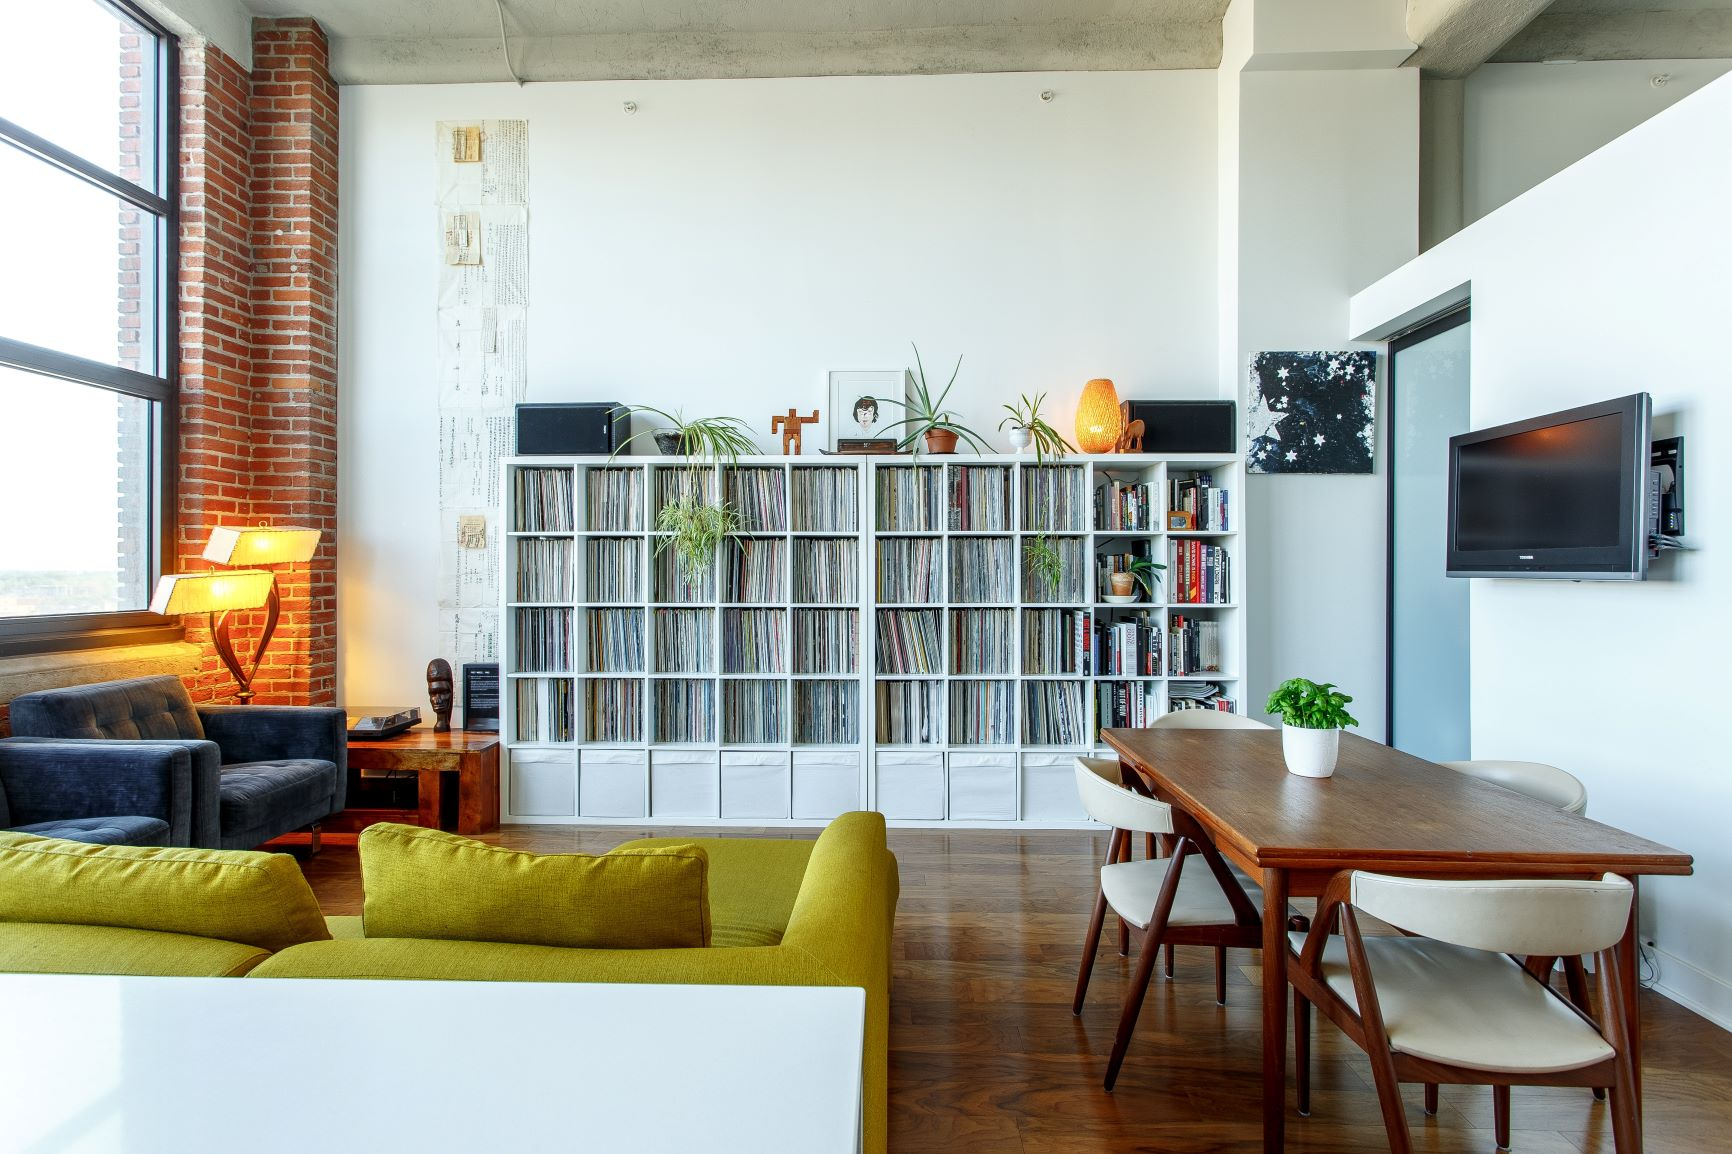 A Quick Space-Saving And Organizing Guide For Your Apartment